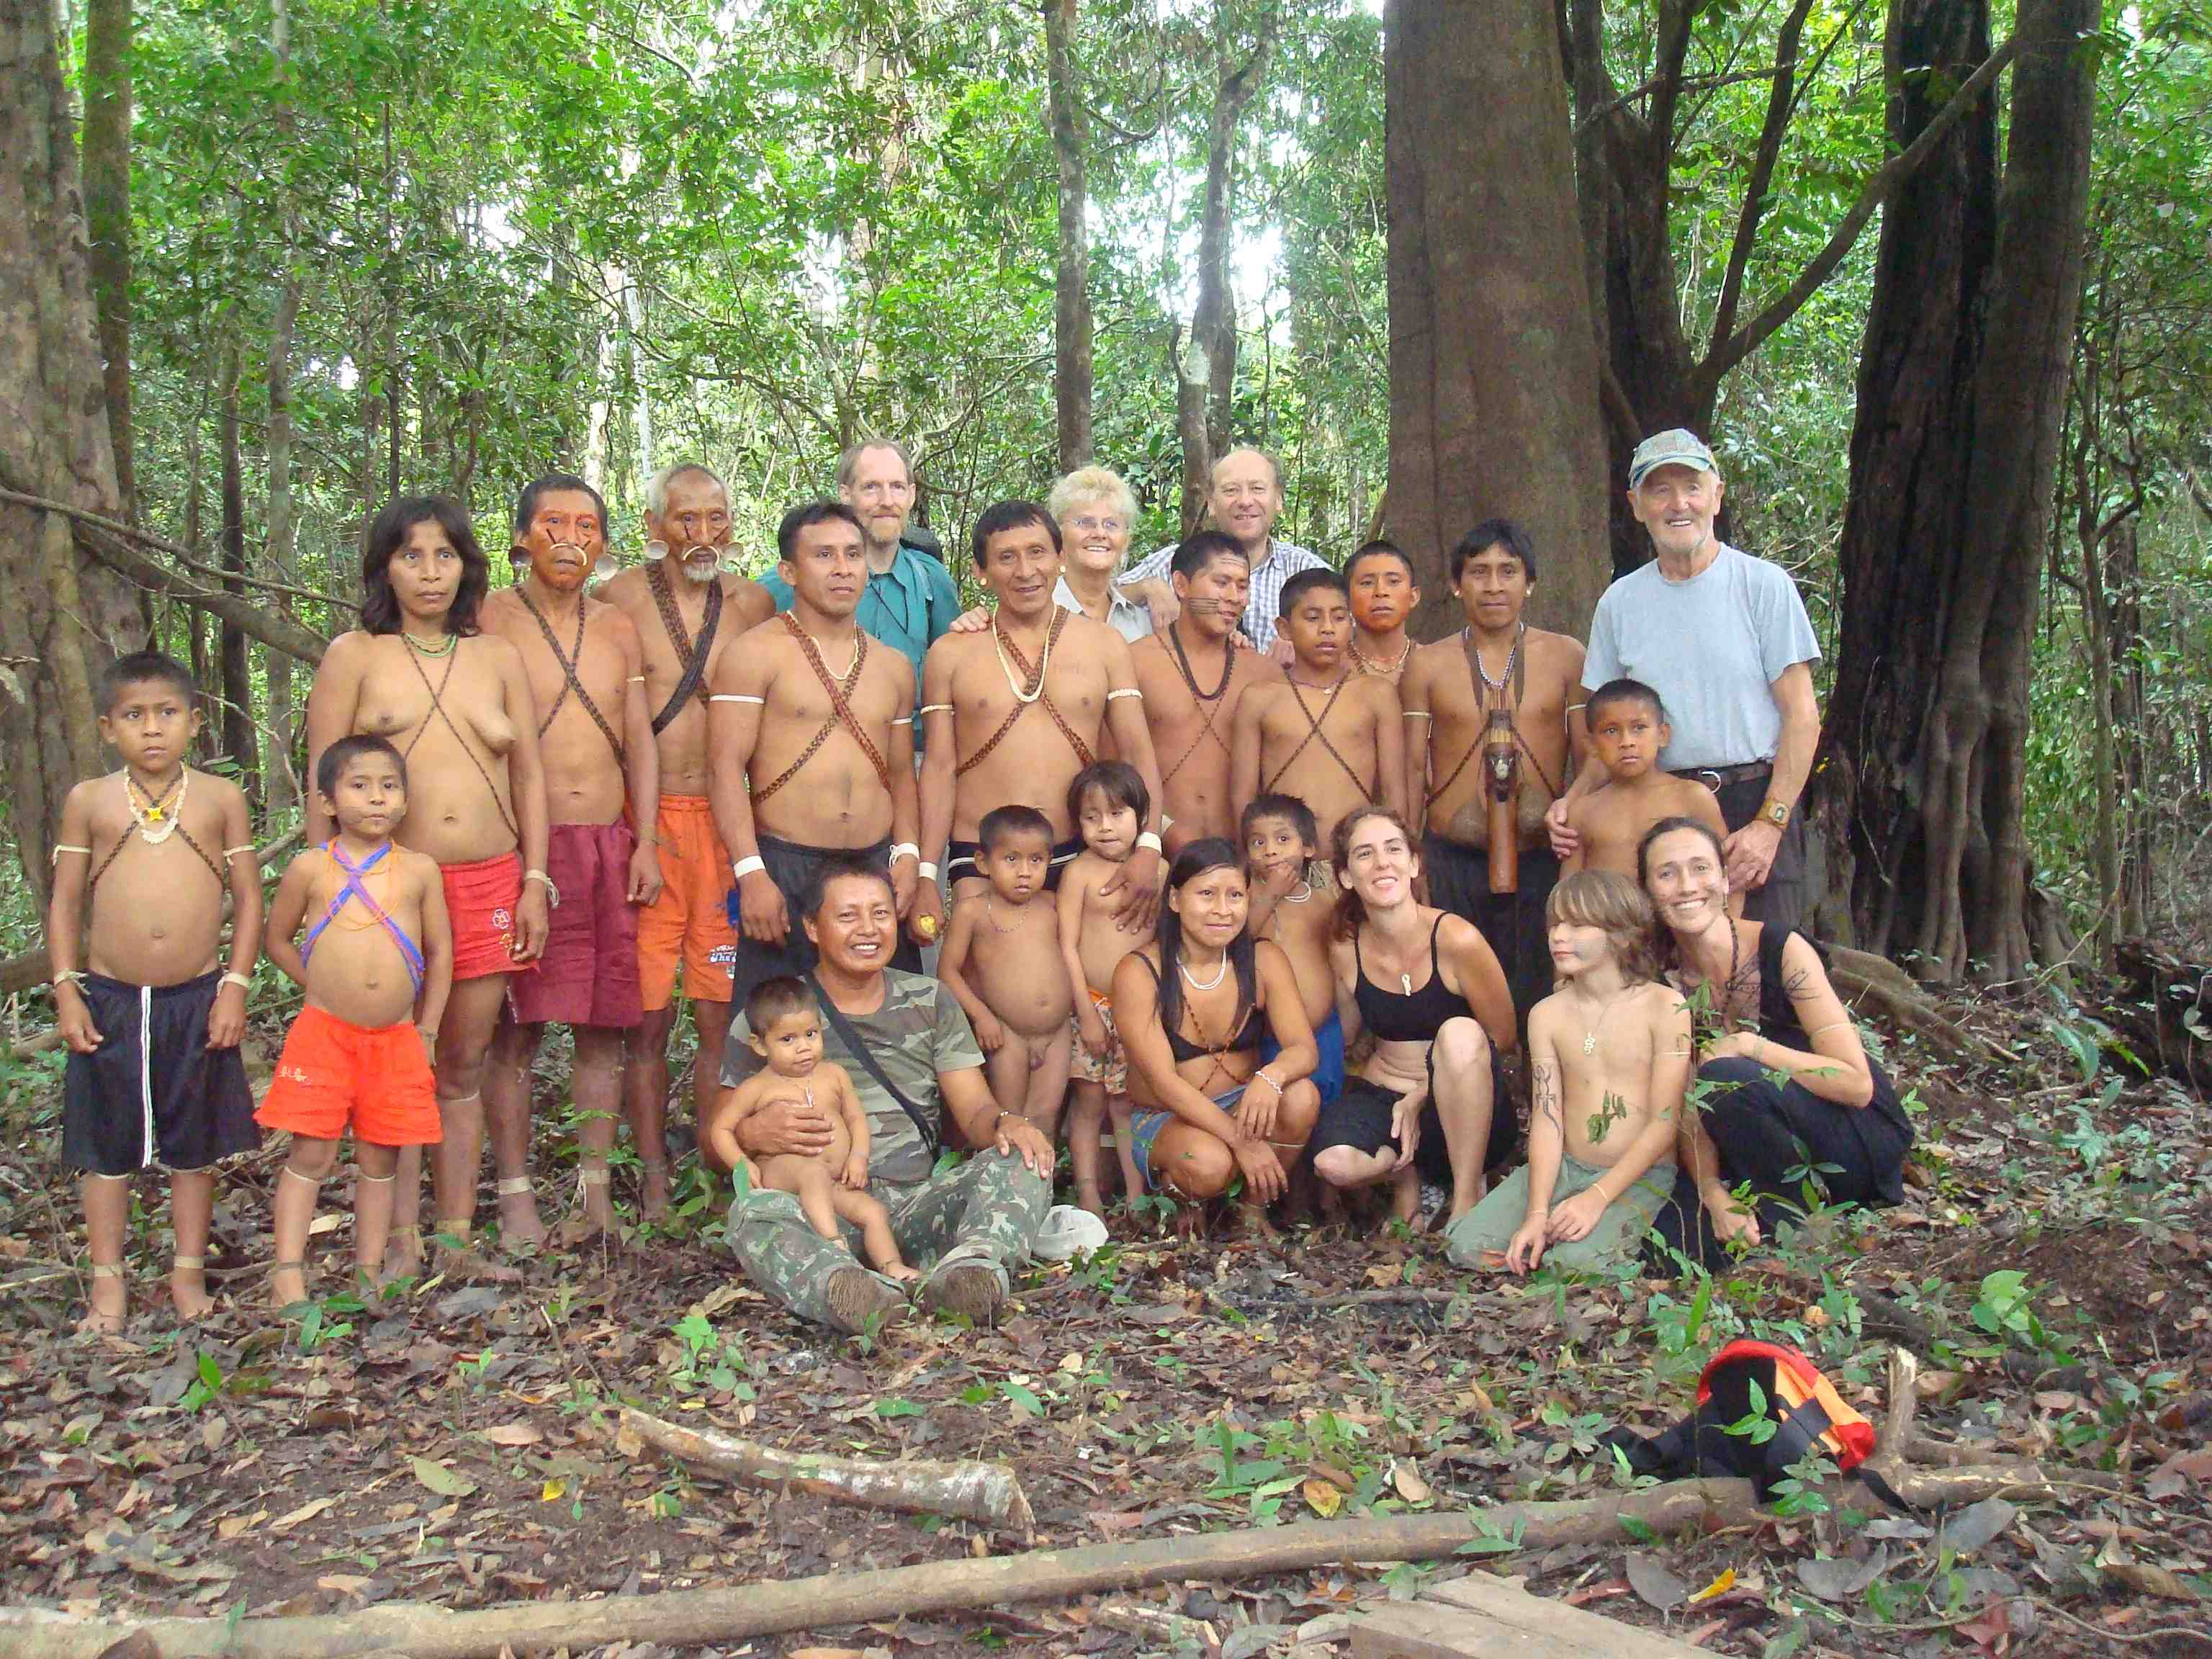 Amazon tribe nudist adult streaming